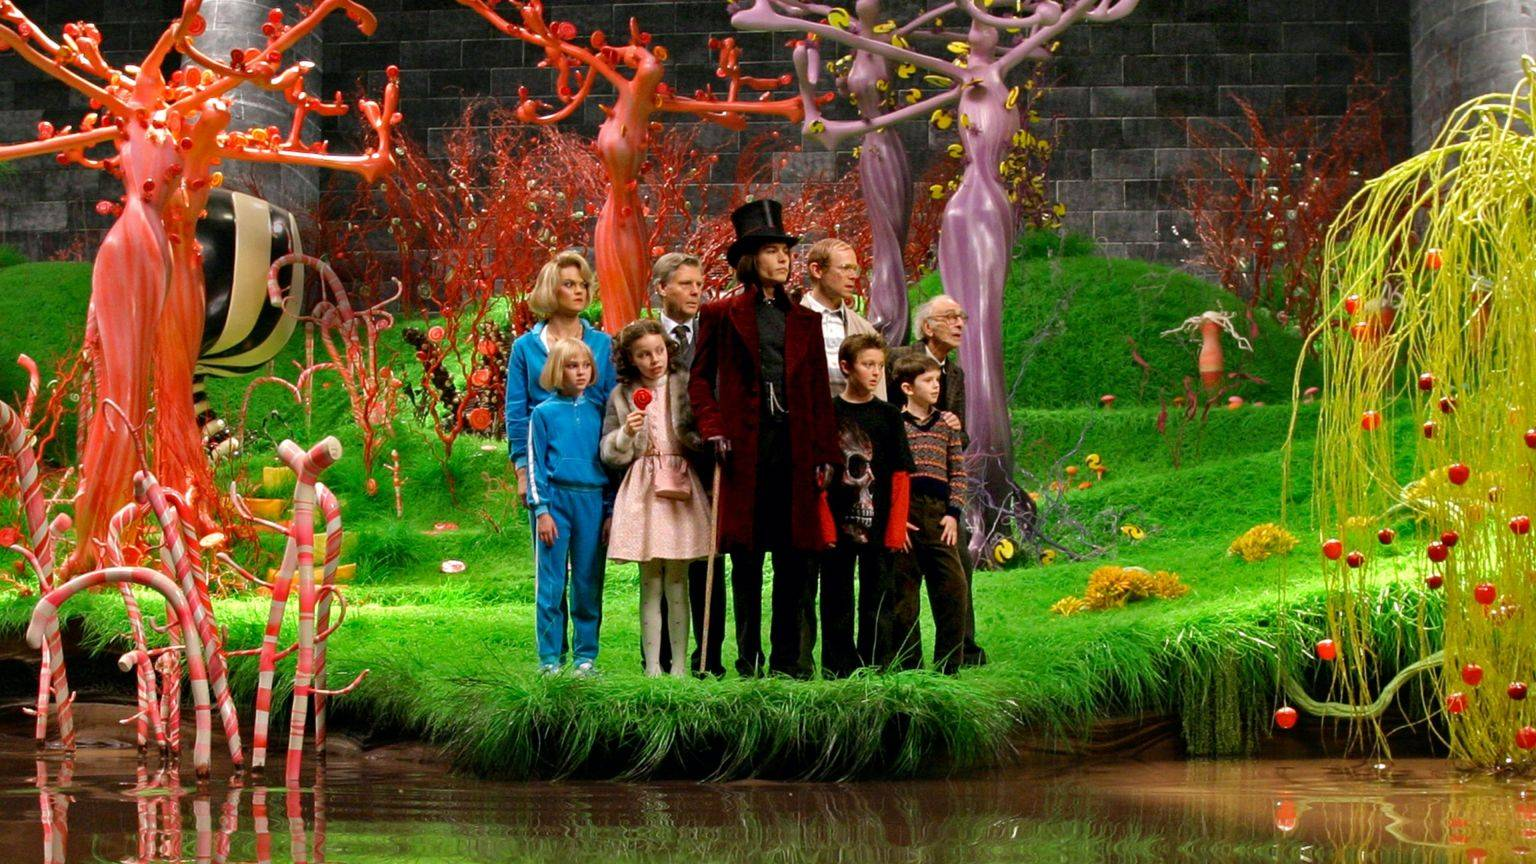 Nieuw op Amazon Prime Video: familiefilm 'Charlie and the Chocolate Factory'